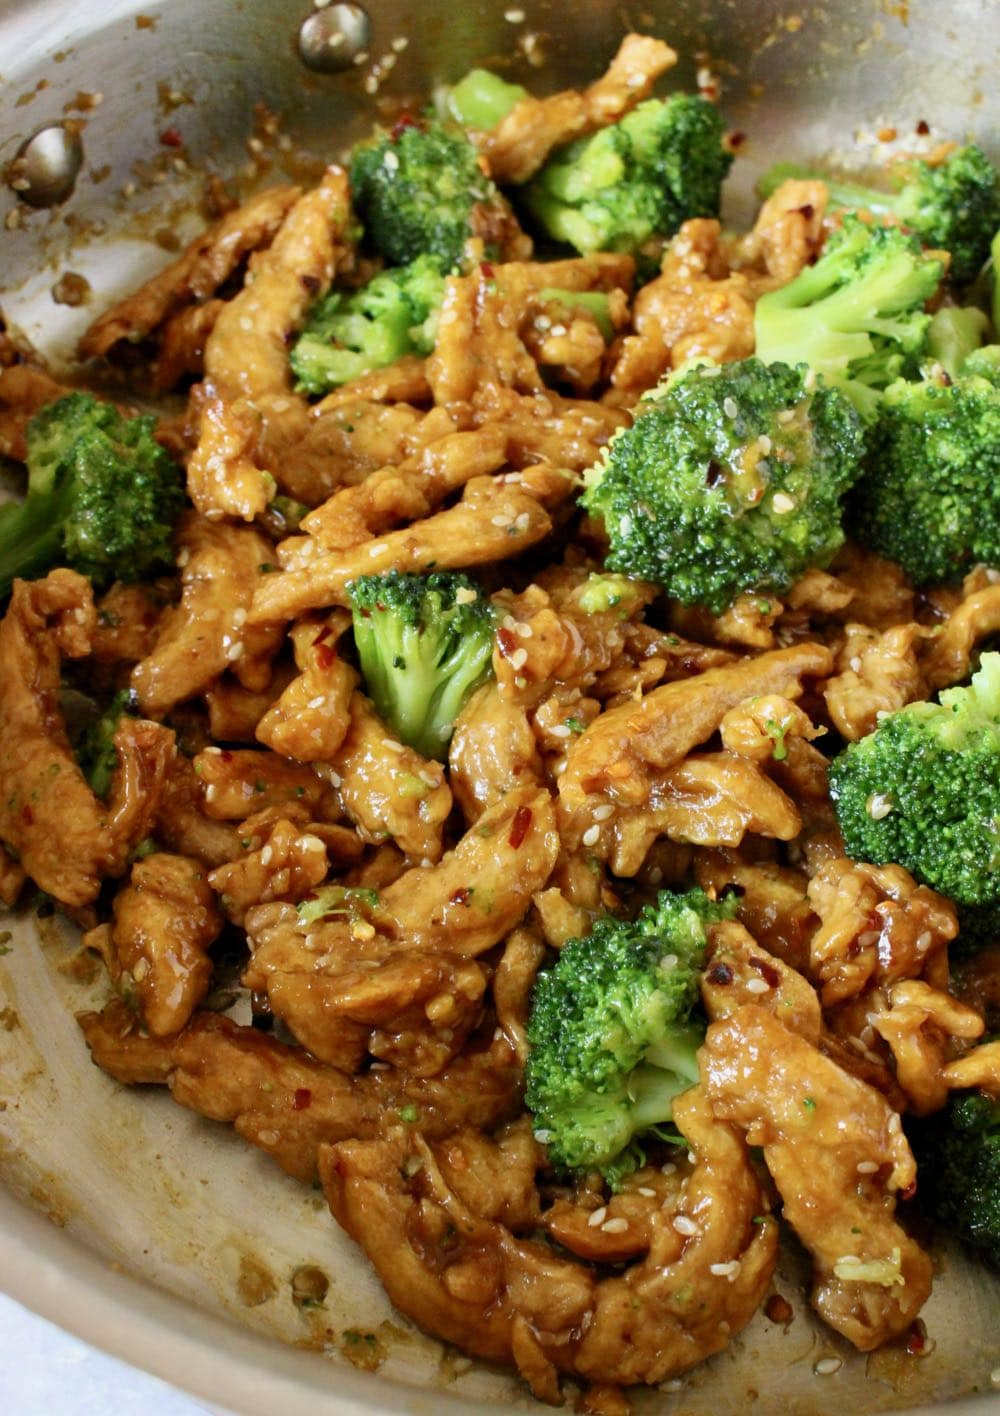 Pan of soy curls with broccoli in garlic ginger sauce